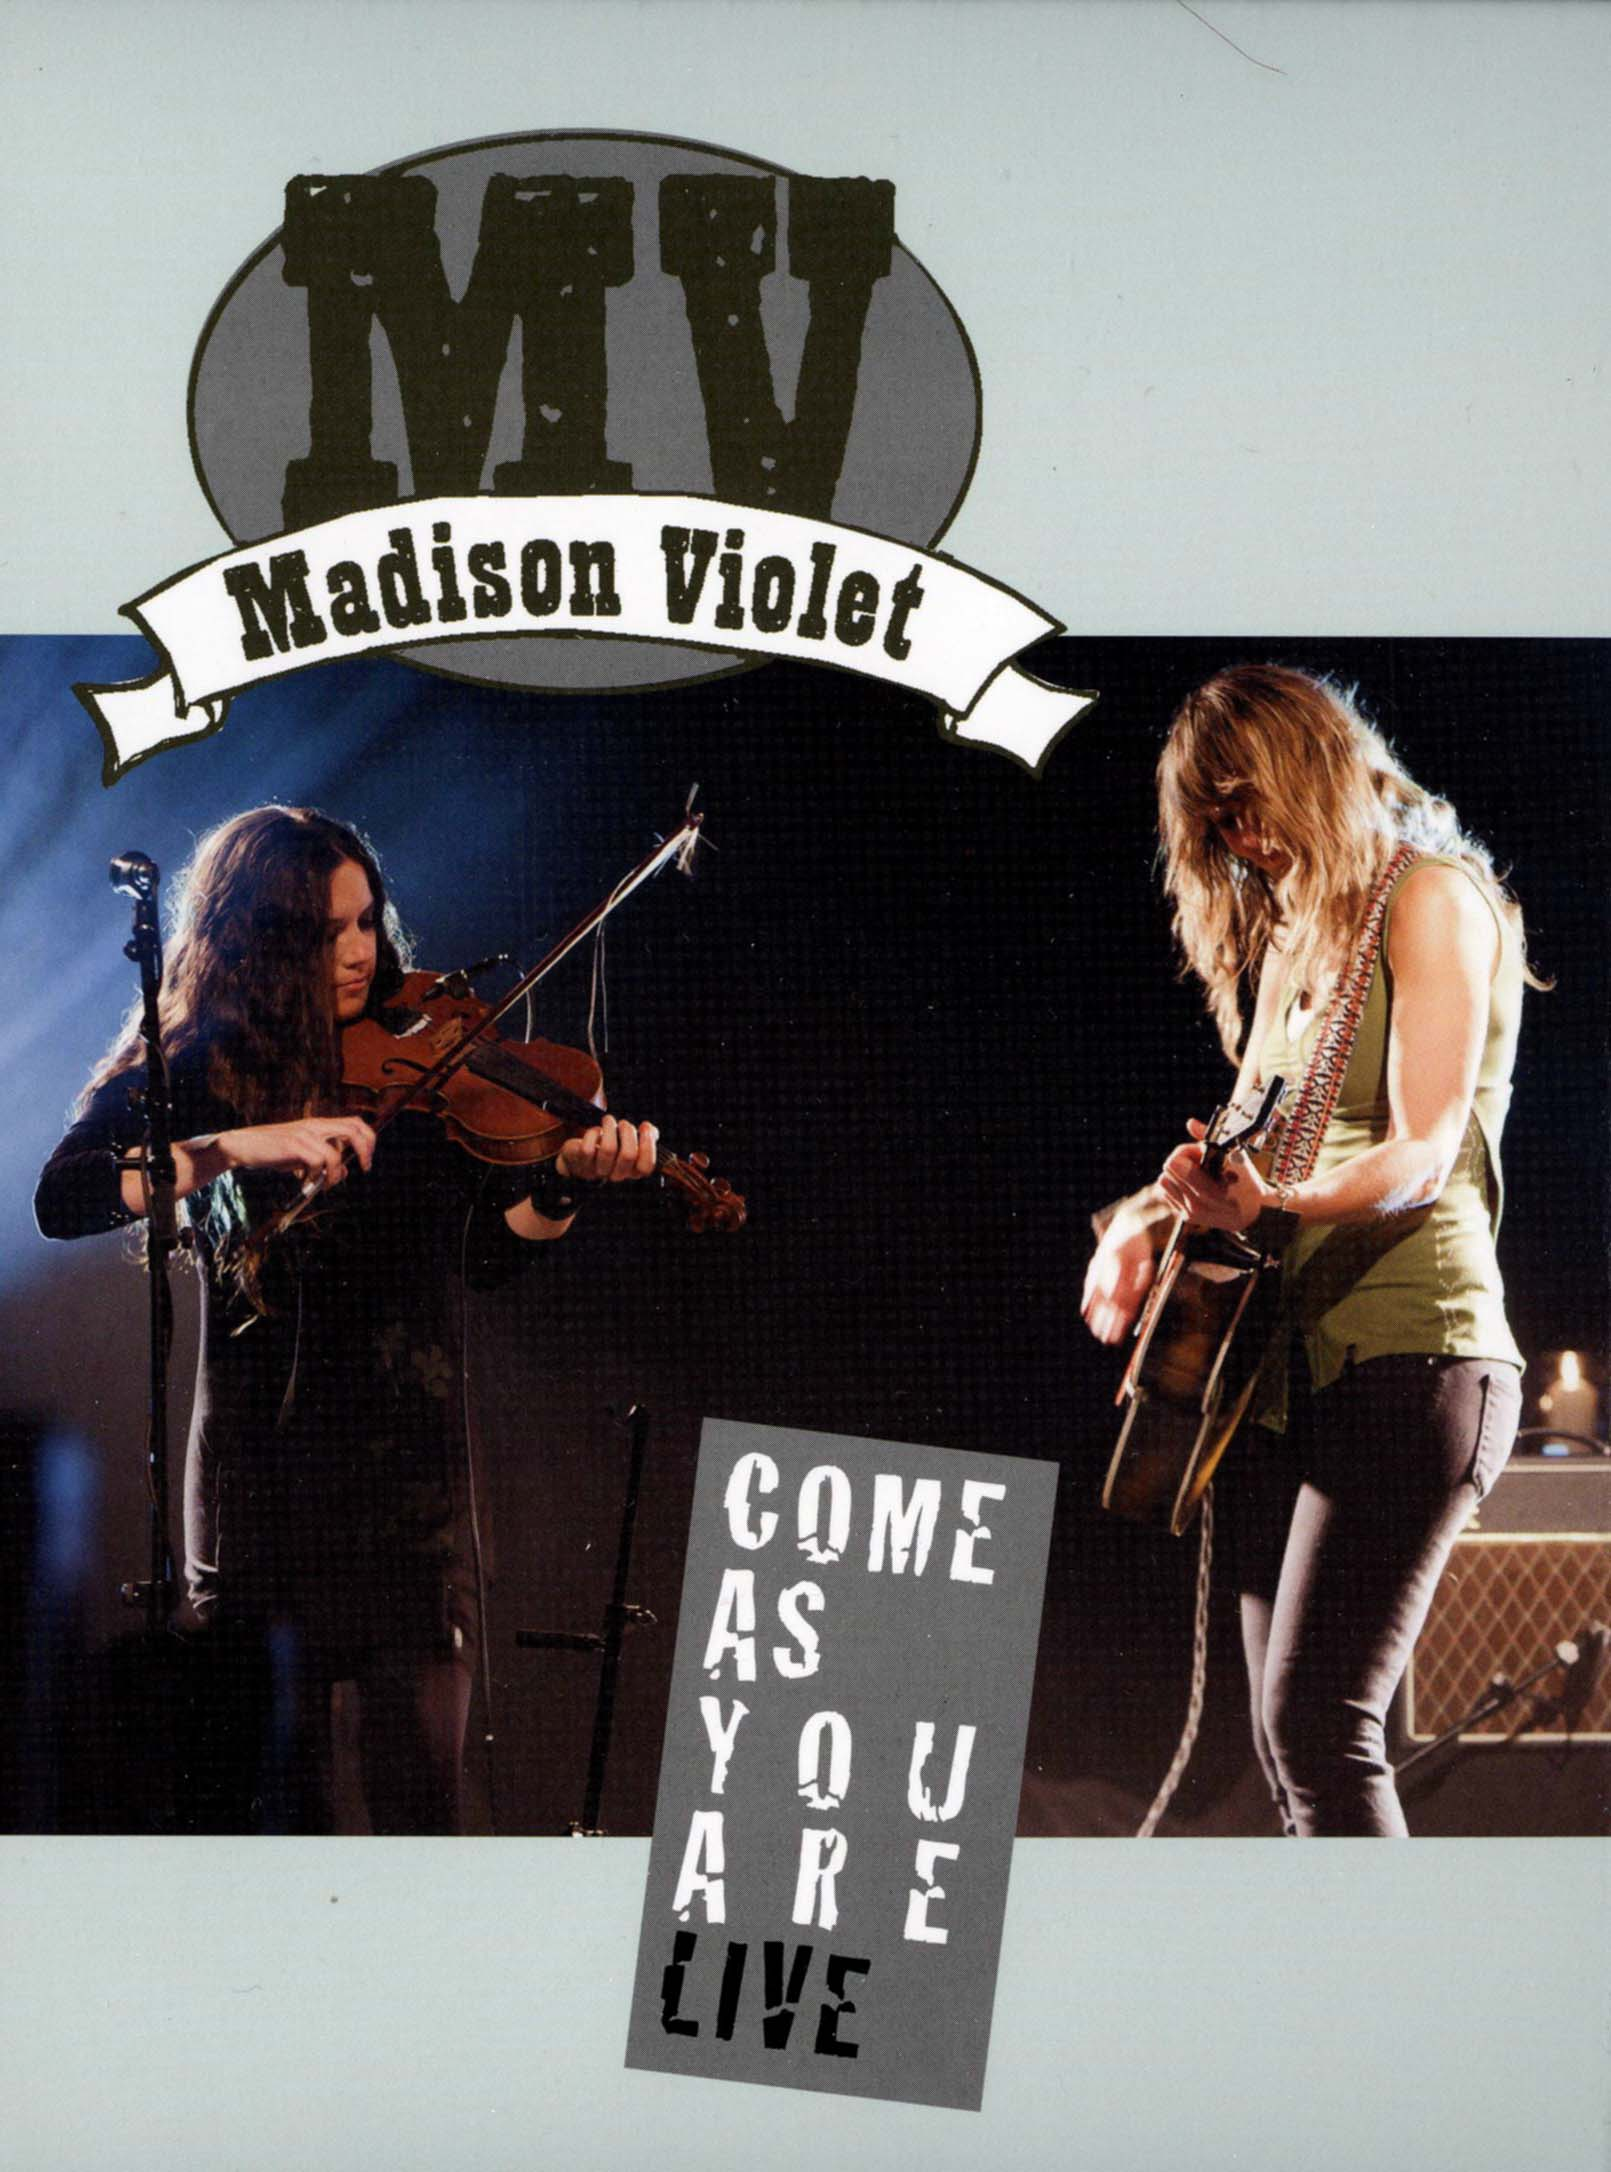 Madison Violet: Come as You Are Live